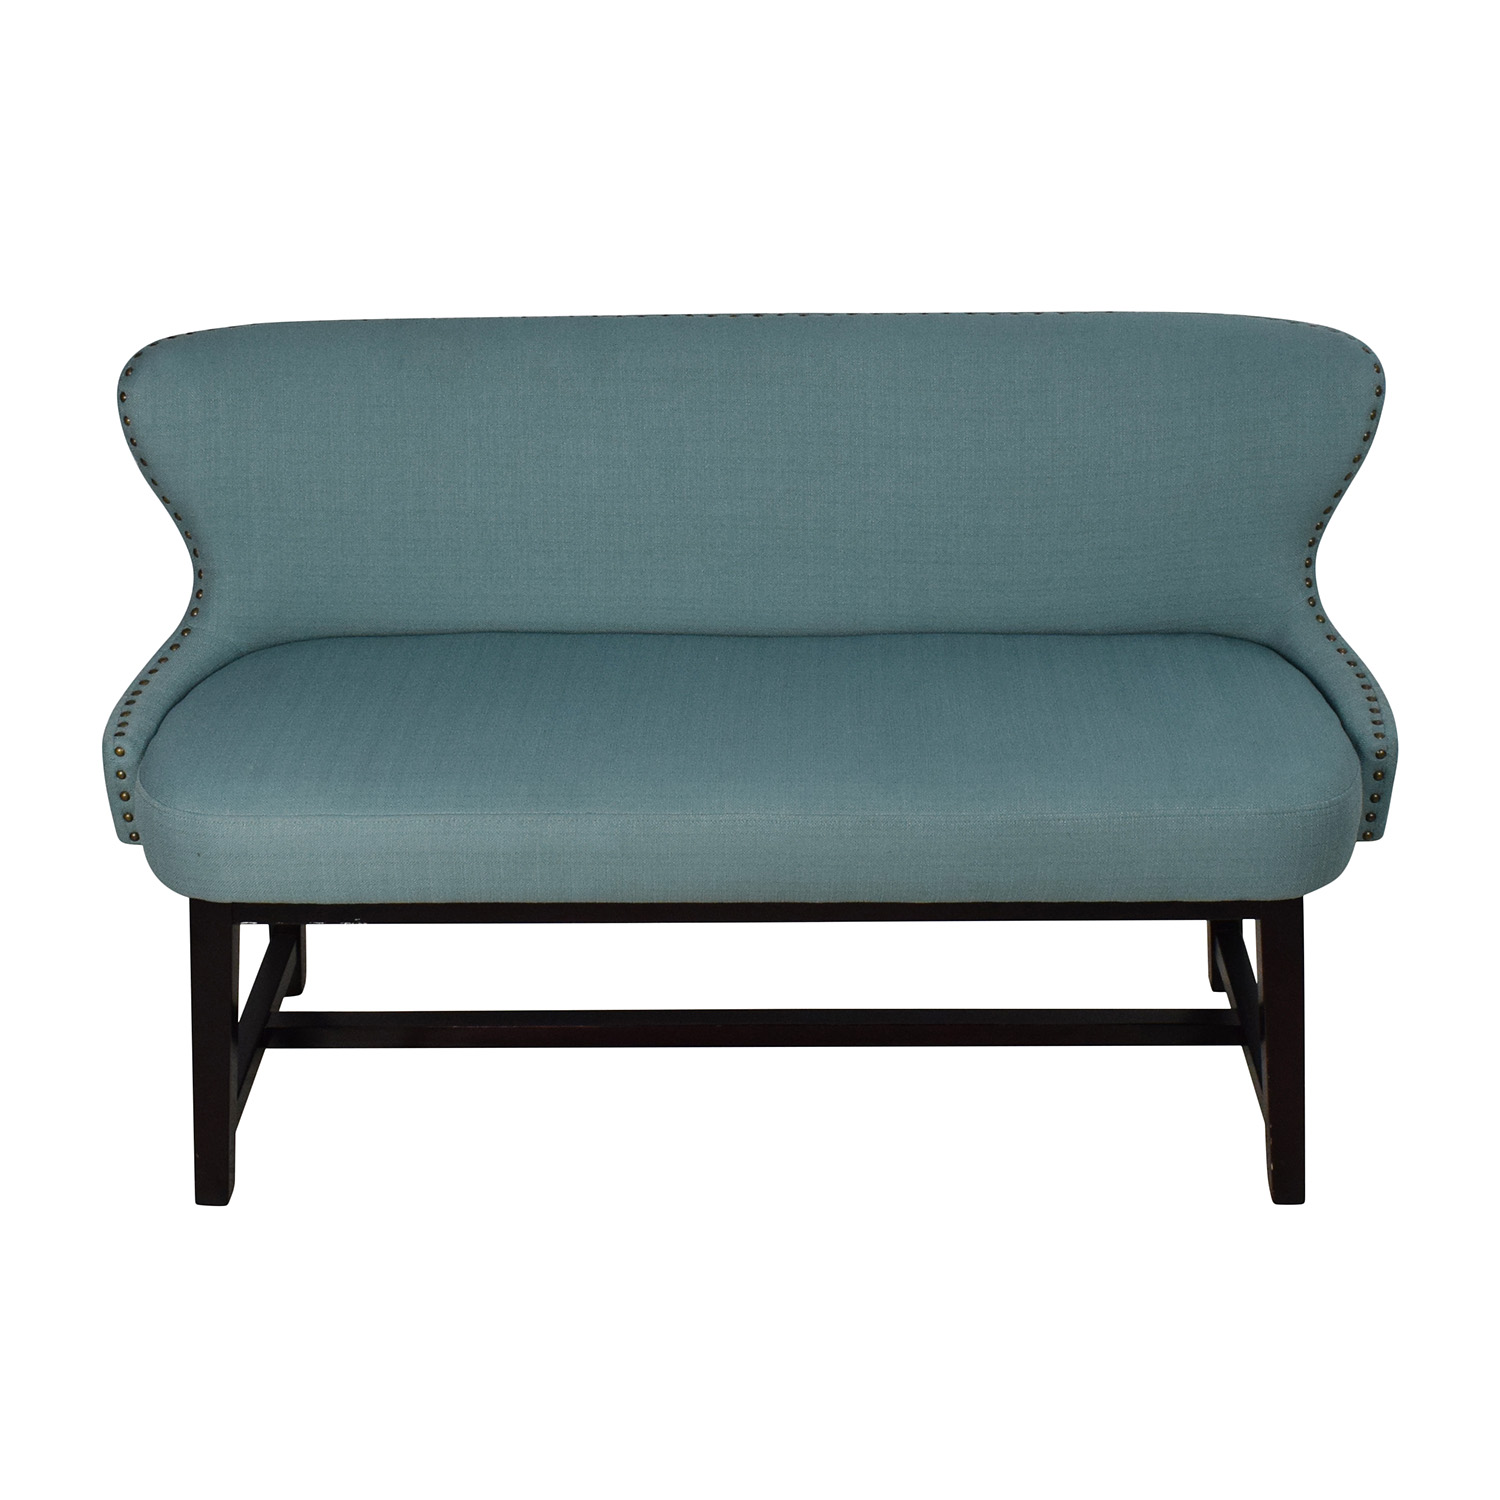 shop Home Goods Upholstered Bench Home Goods Benches